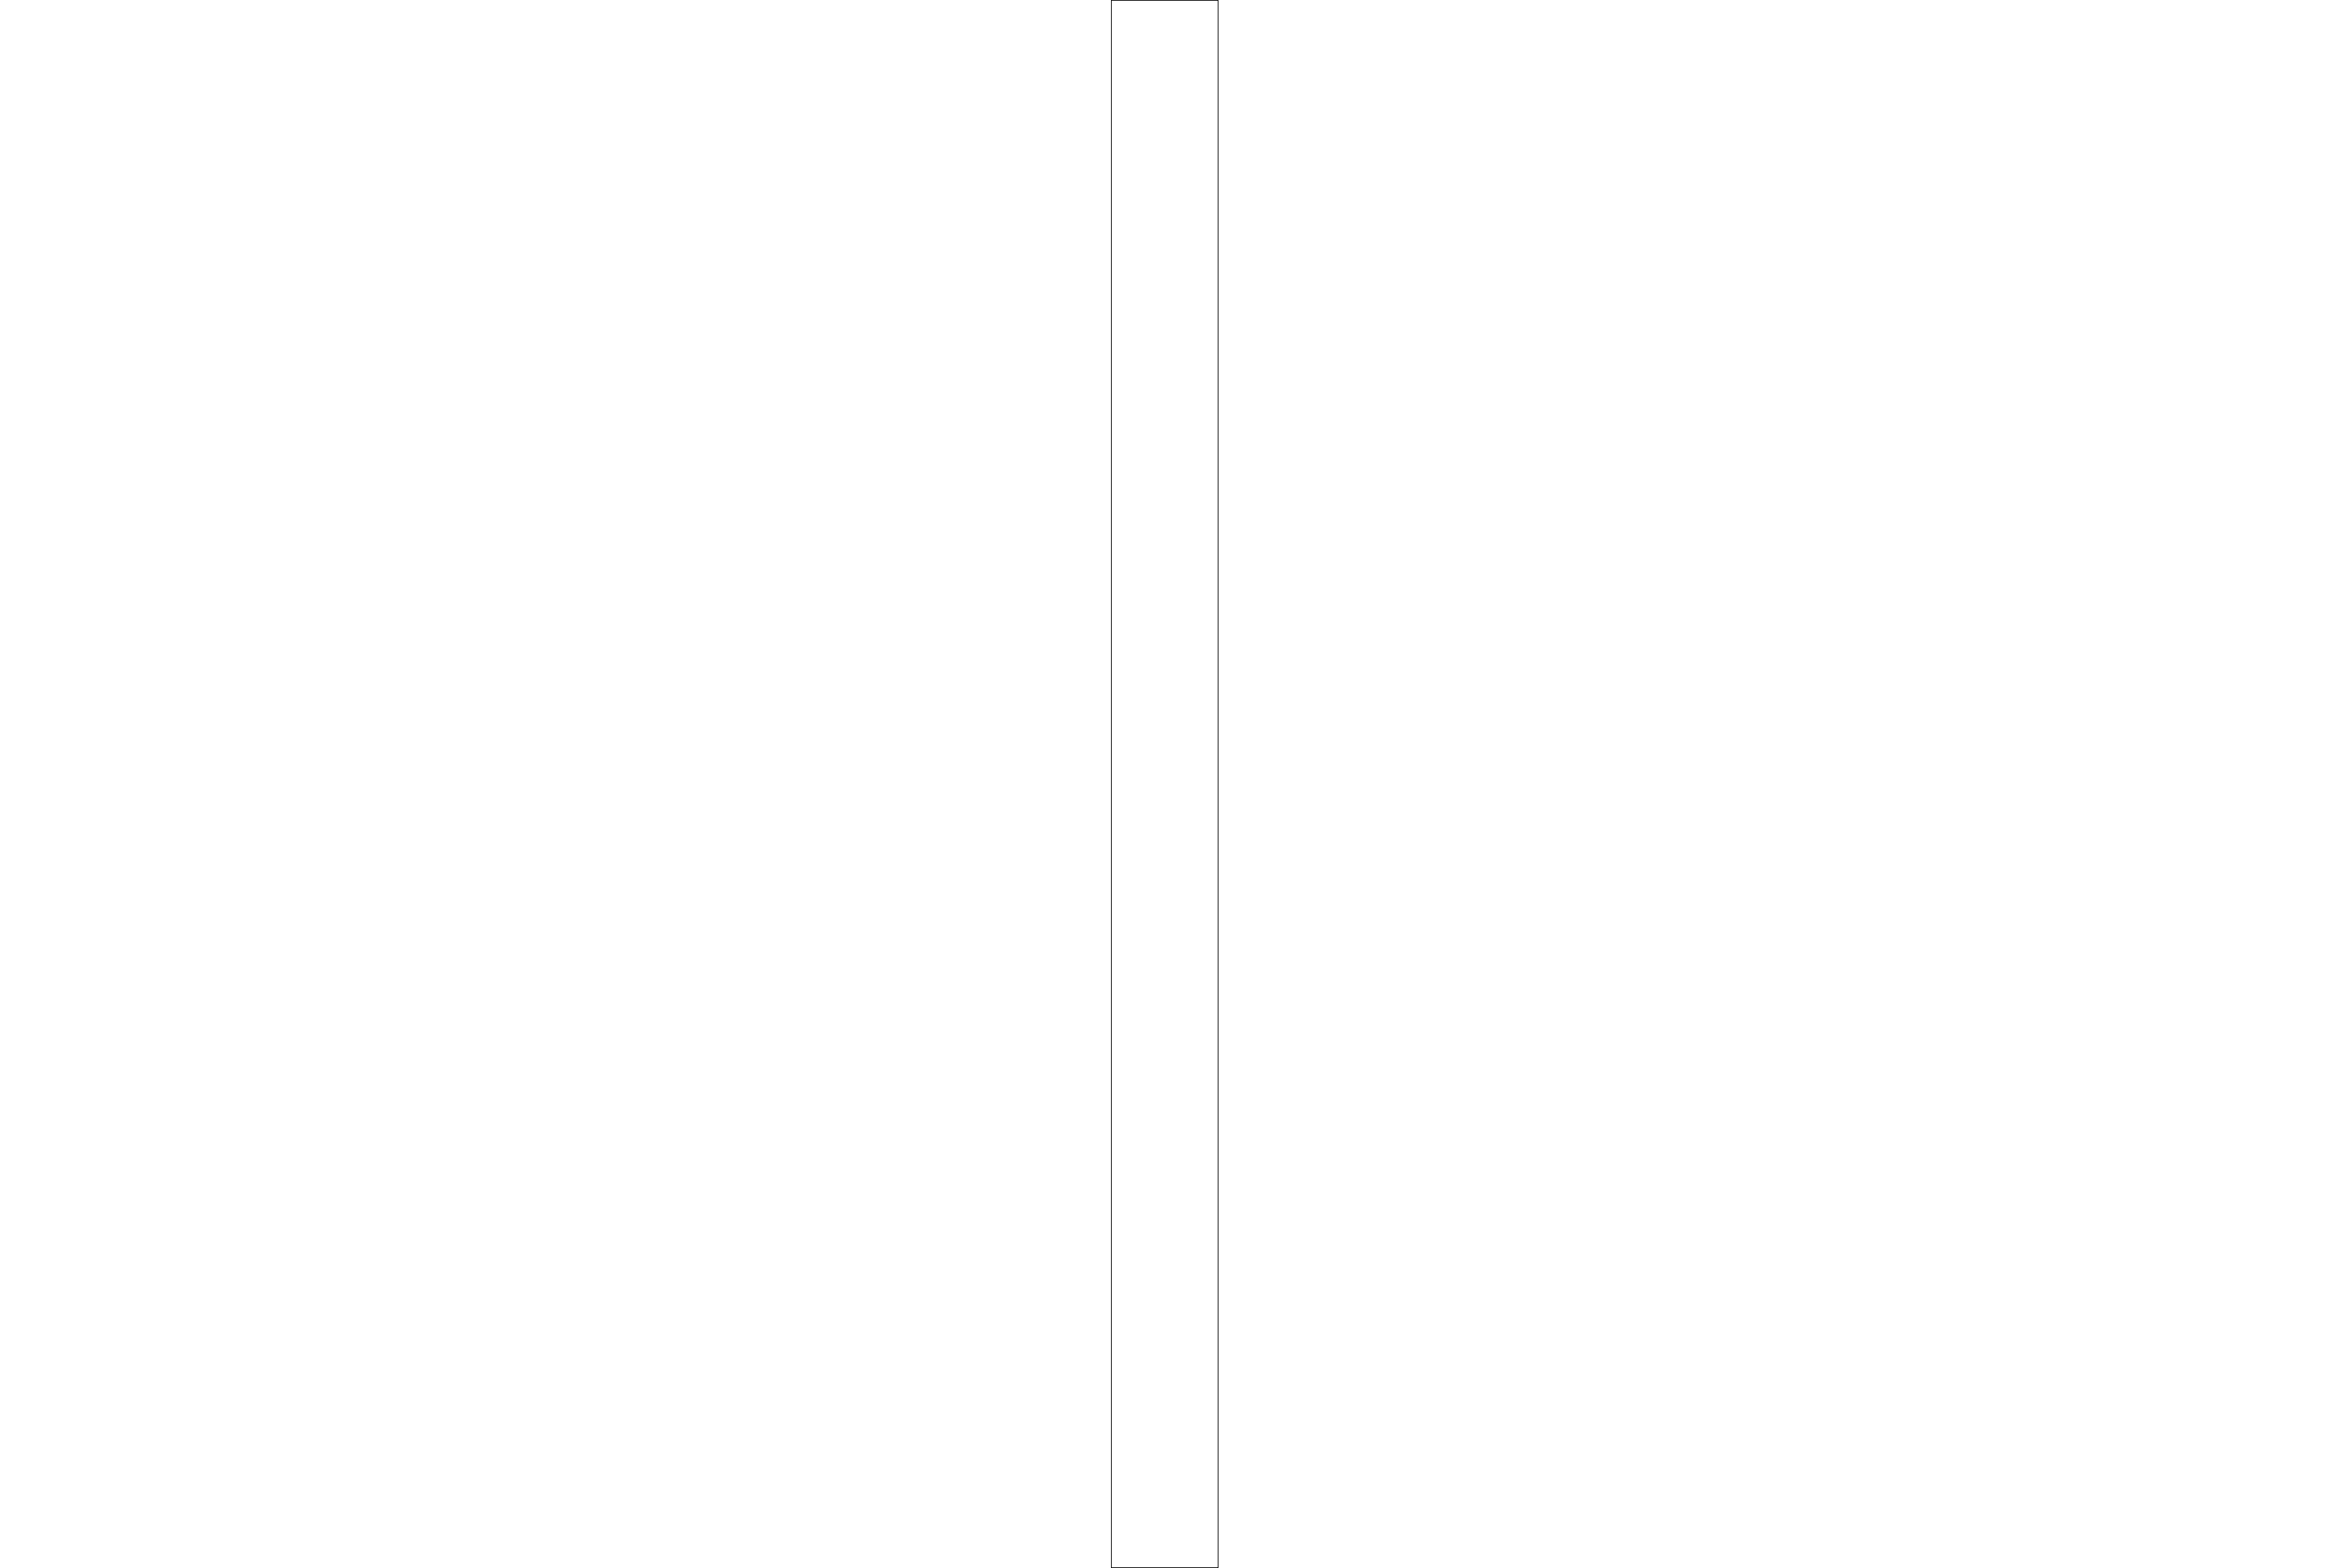 blank dvd cover template